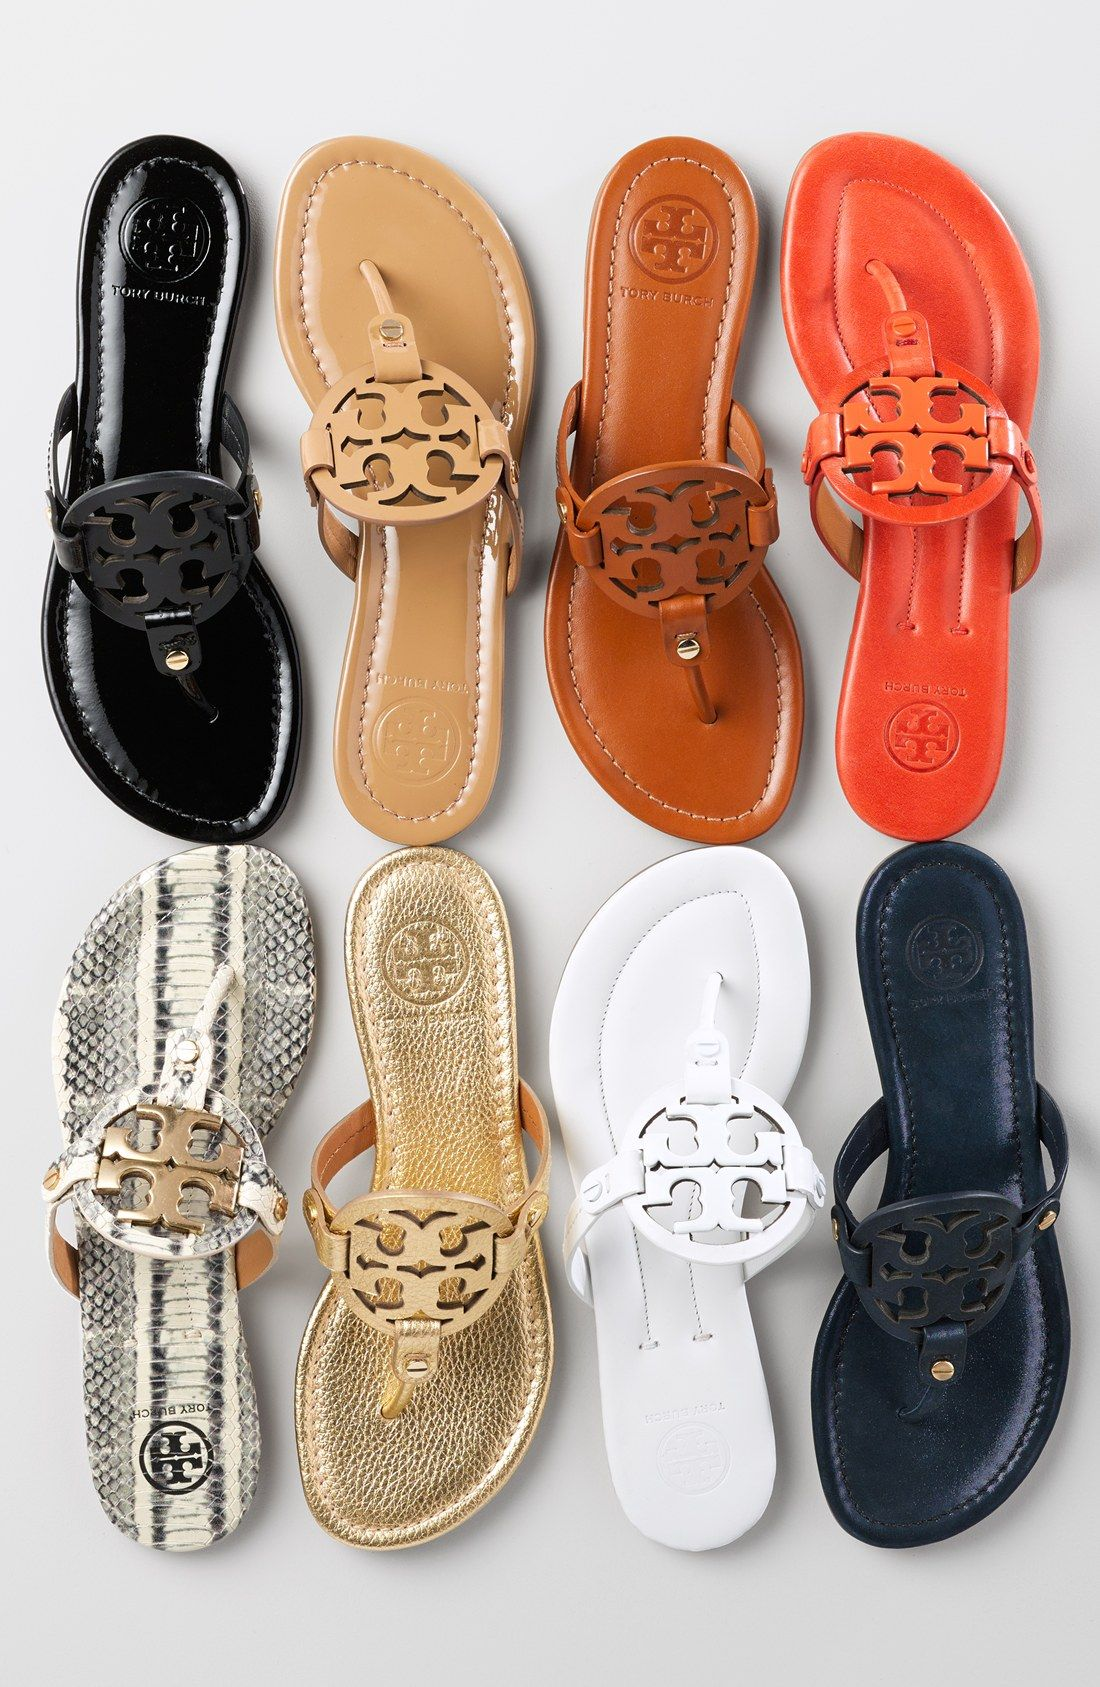 327f87820a2 Tory Burch Miller sandals